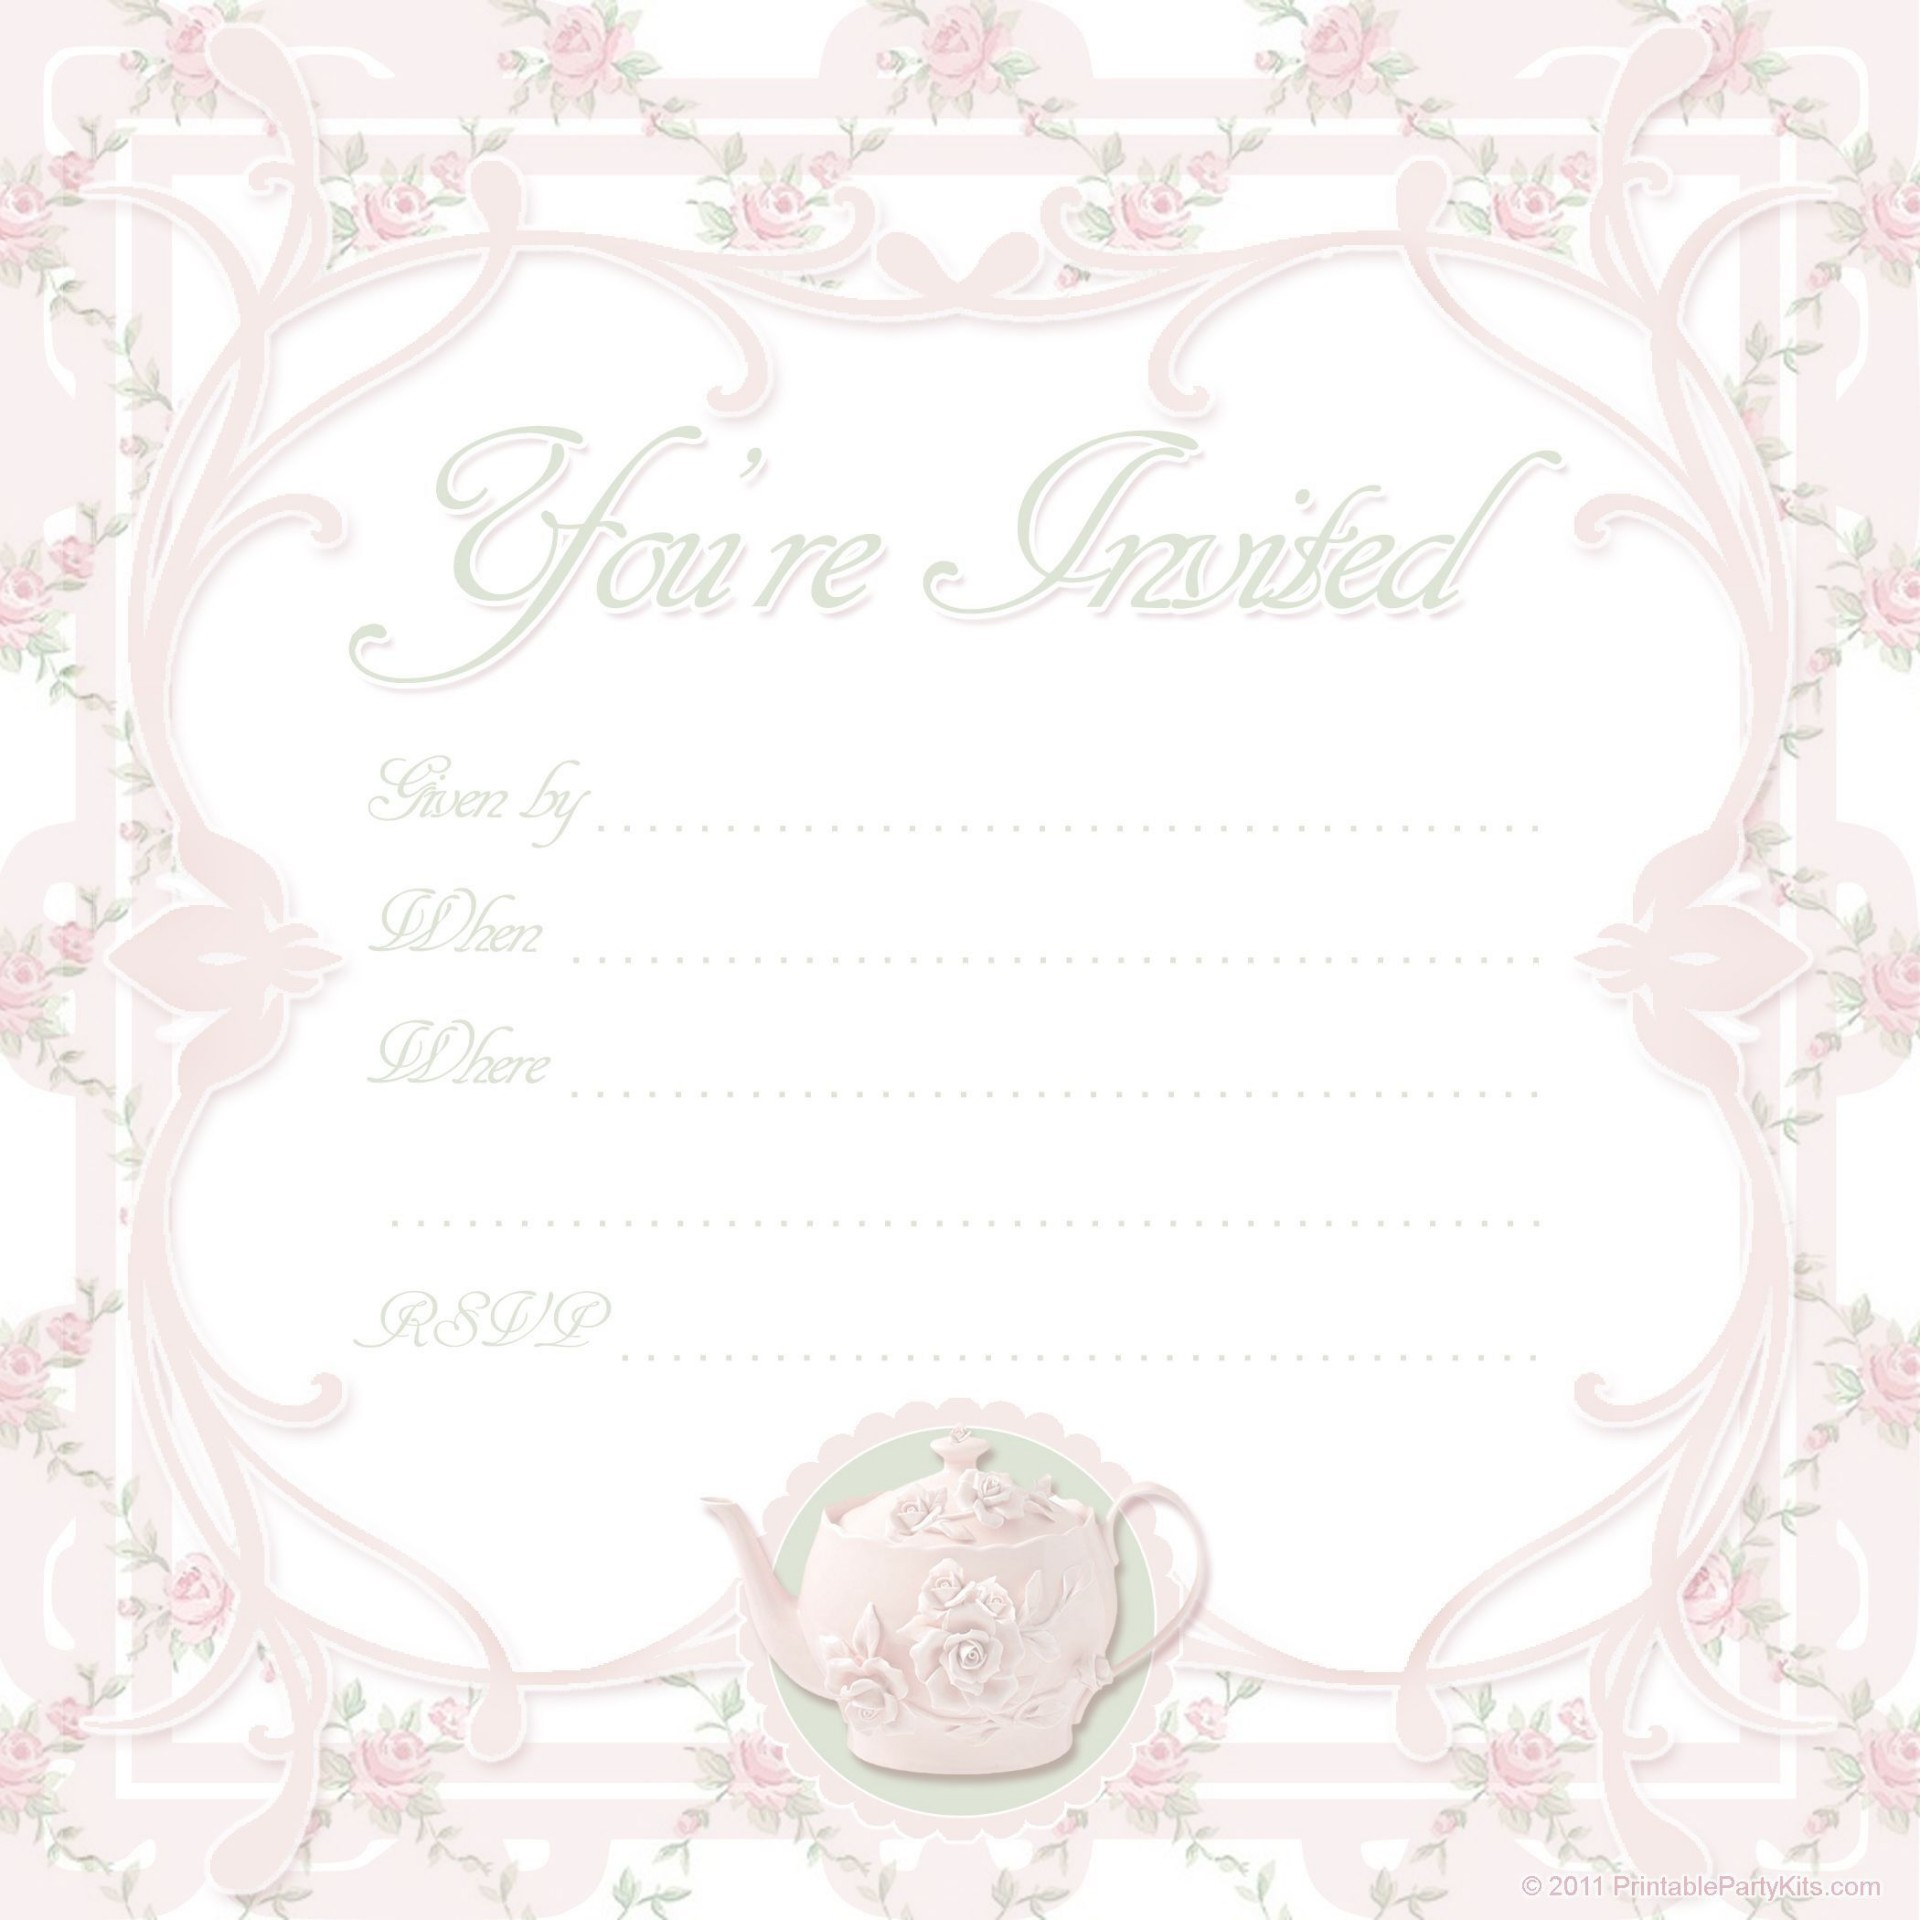 000 Awesome Tea Party Invitation Template High Def  Wording Vintage Free Sample1920